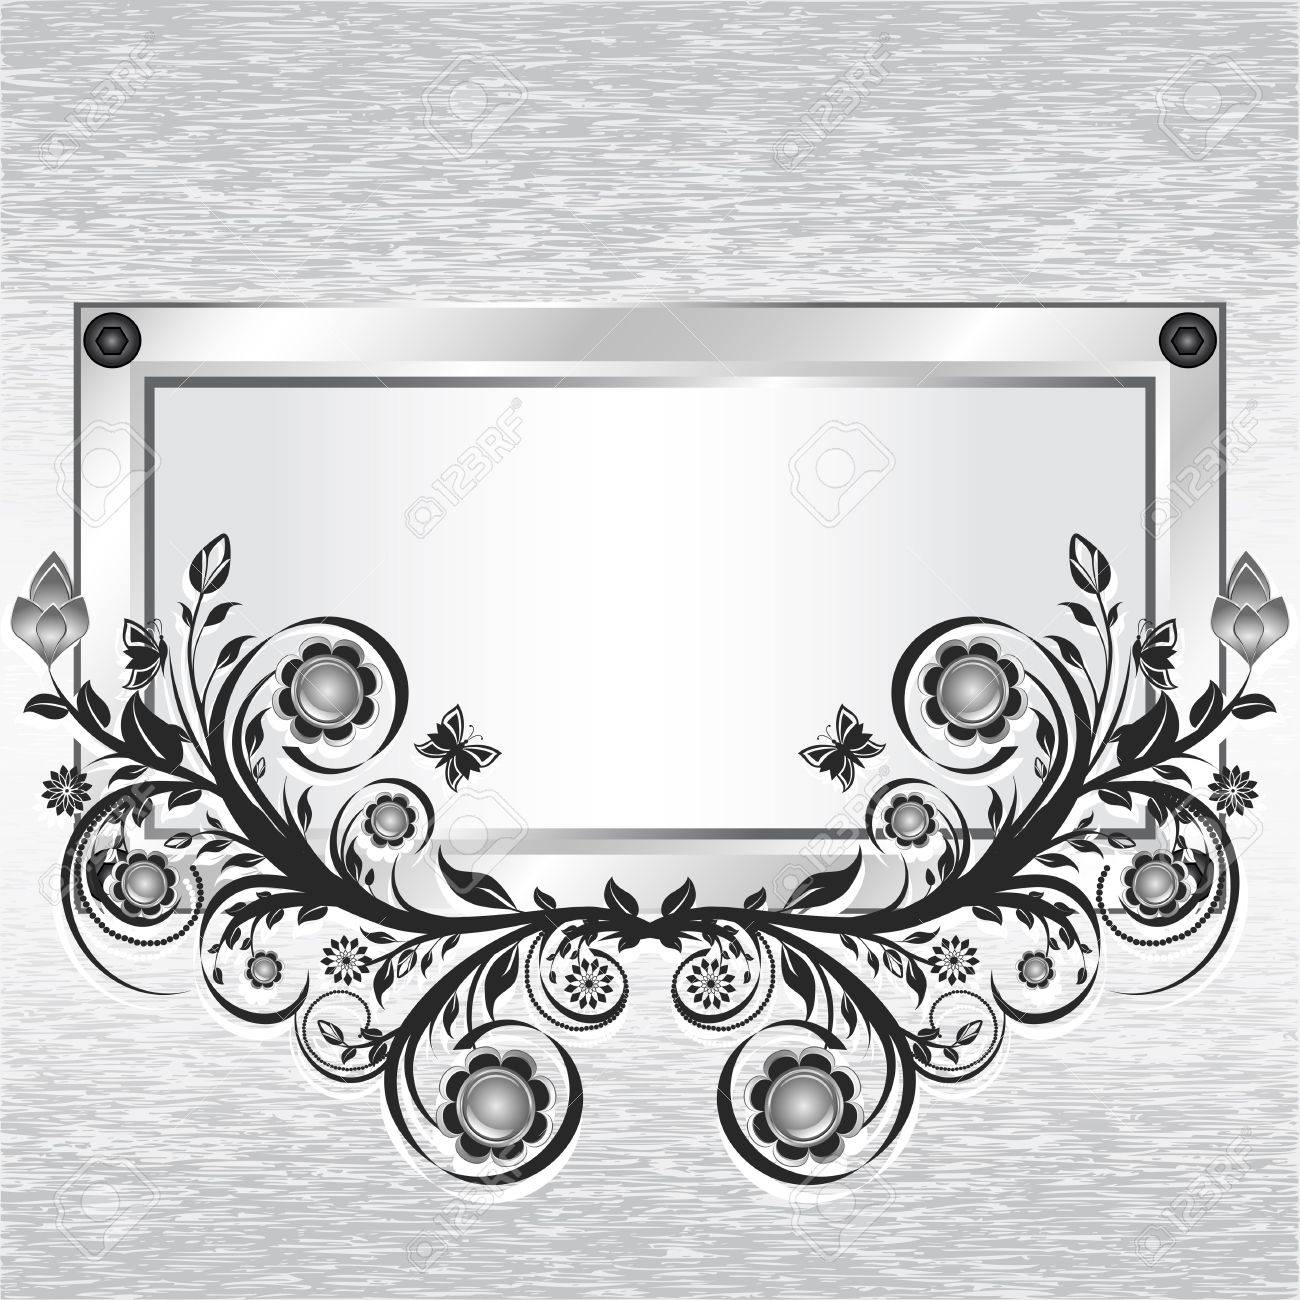 illustration of a grunge metal background with frame and flower ornament. Stock Vector - 10669613